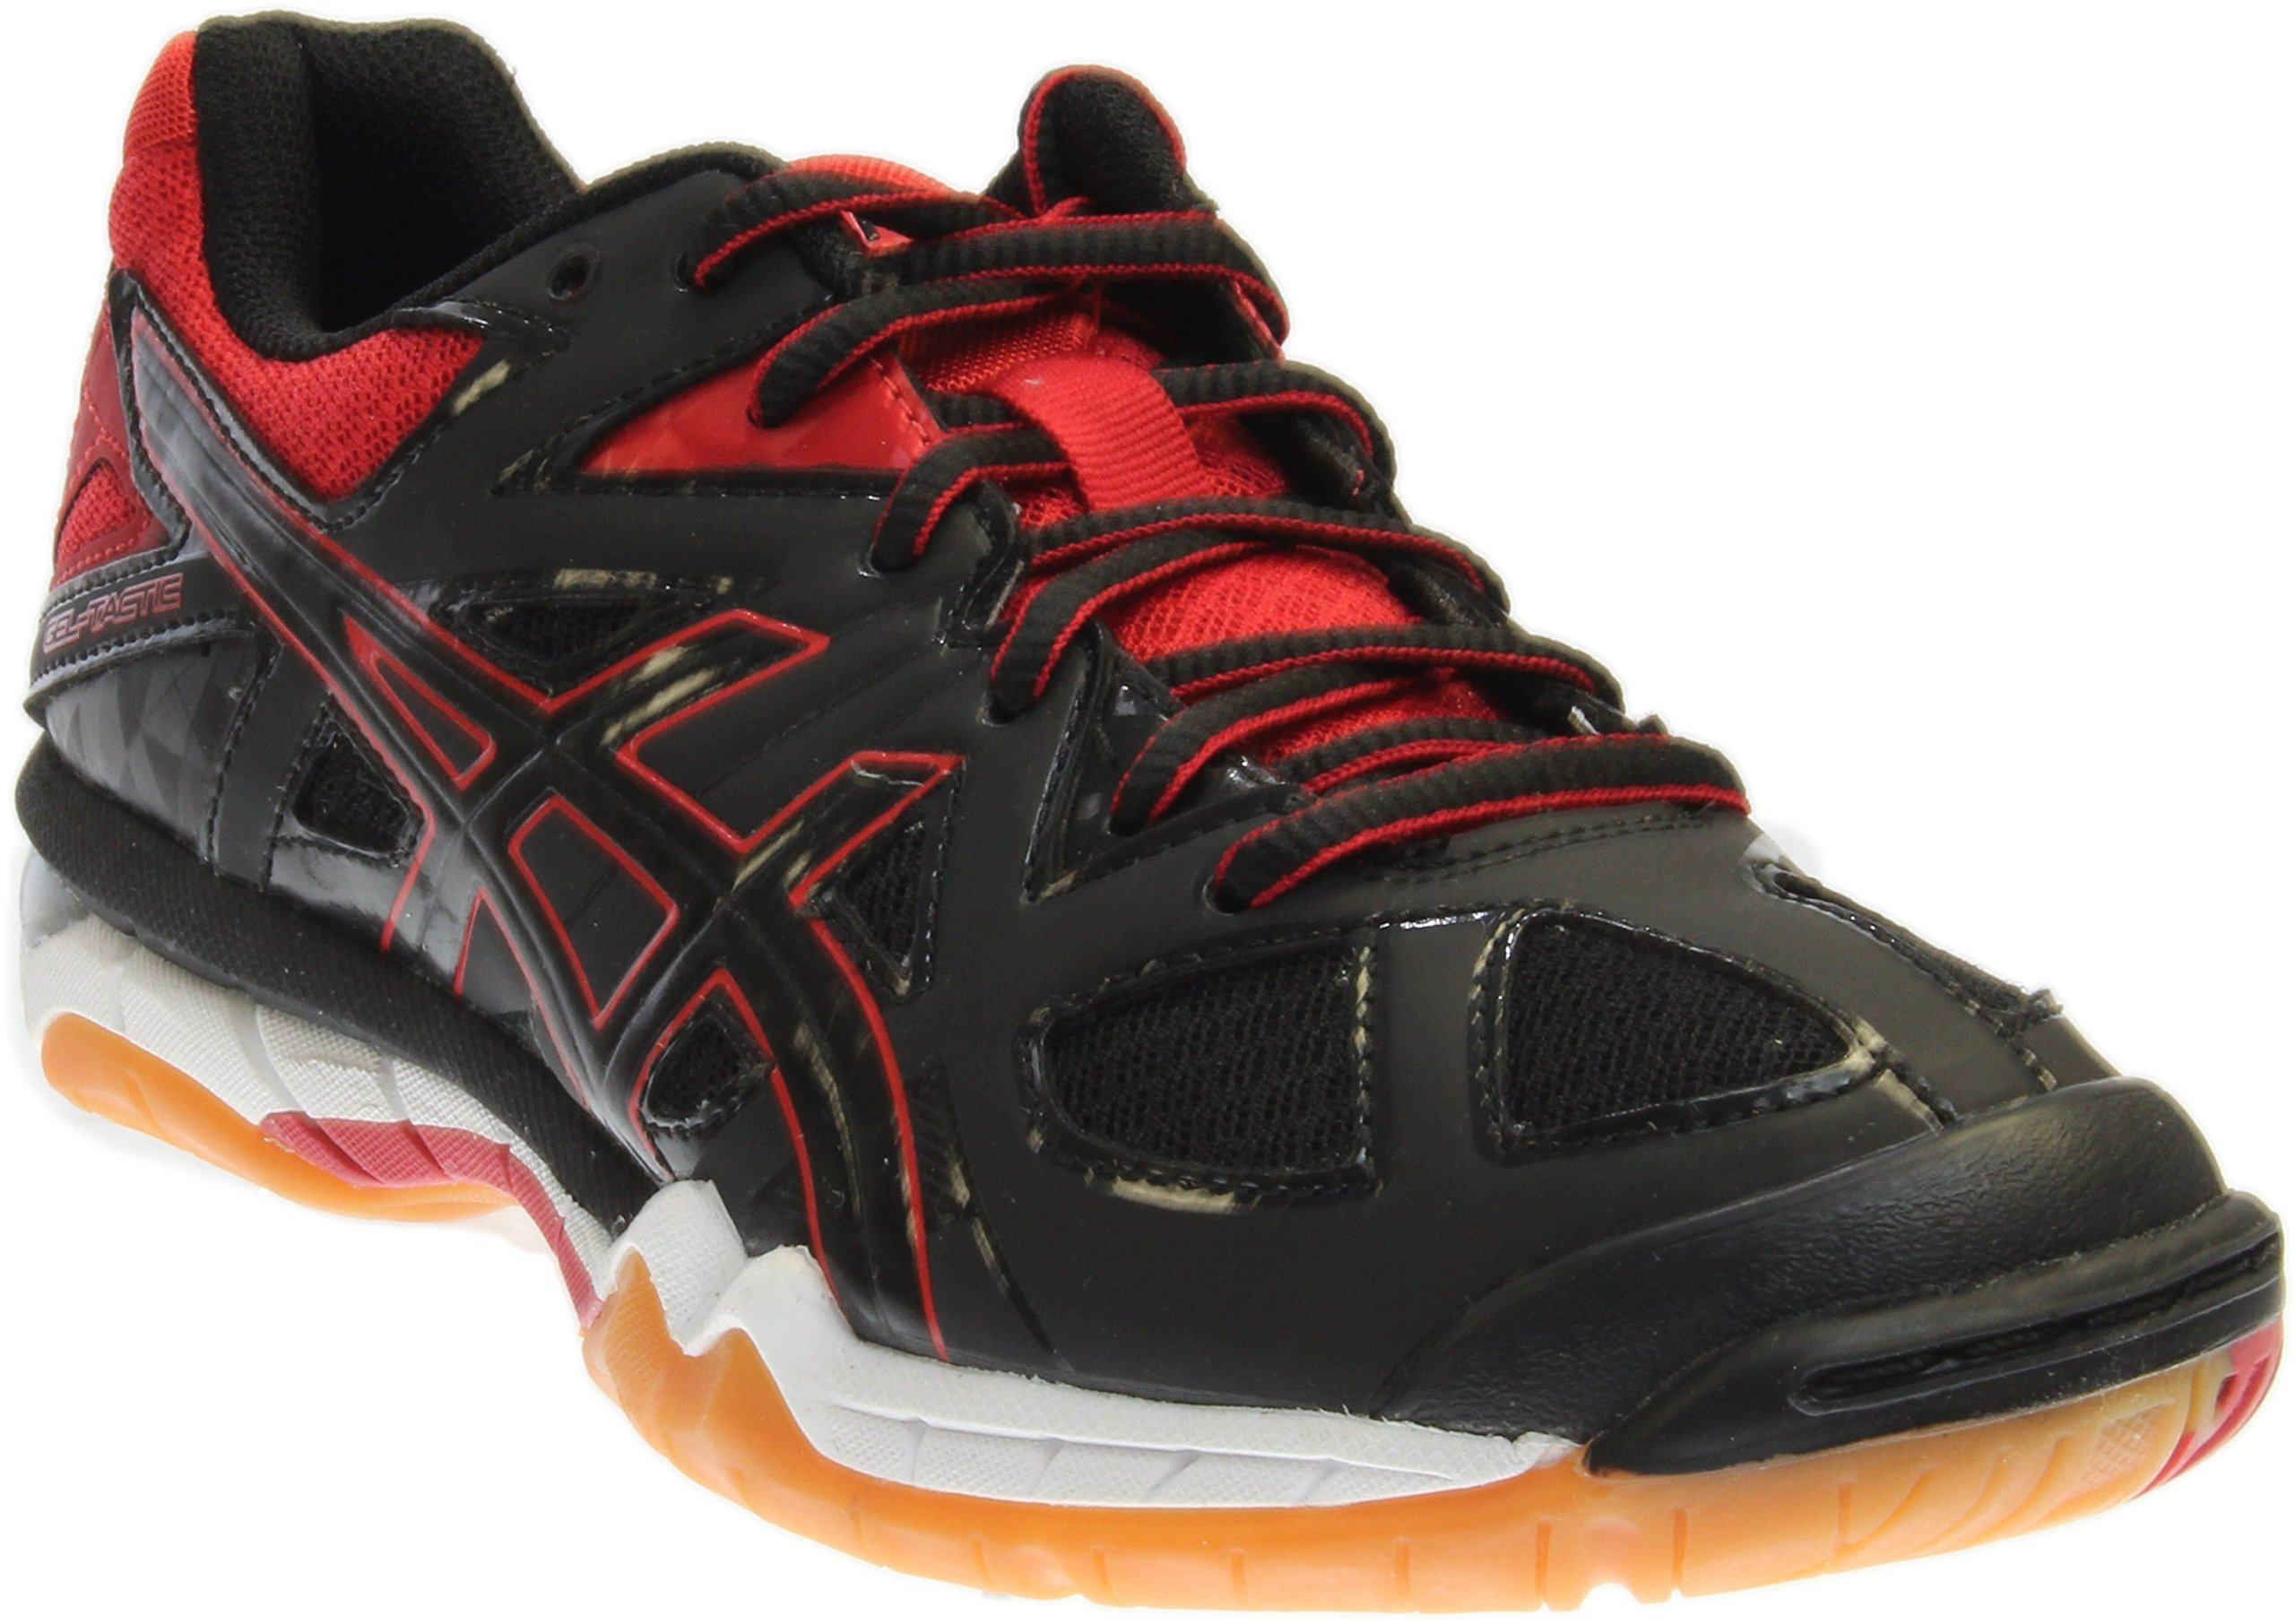 ASICS Women's Gel Tactic Volleyball Shoe, Black/Black/Fiery Red, 8.5 M US